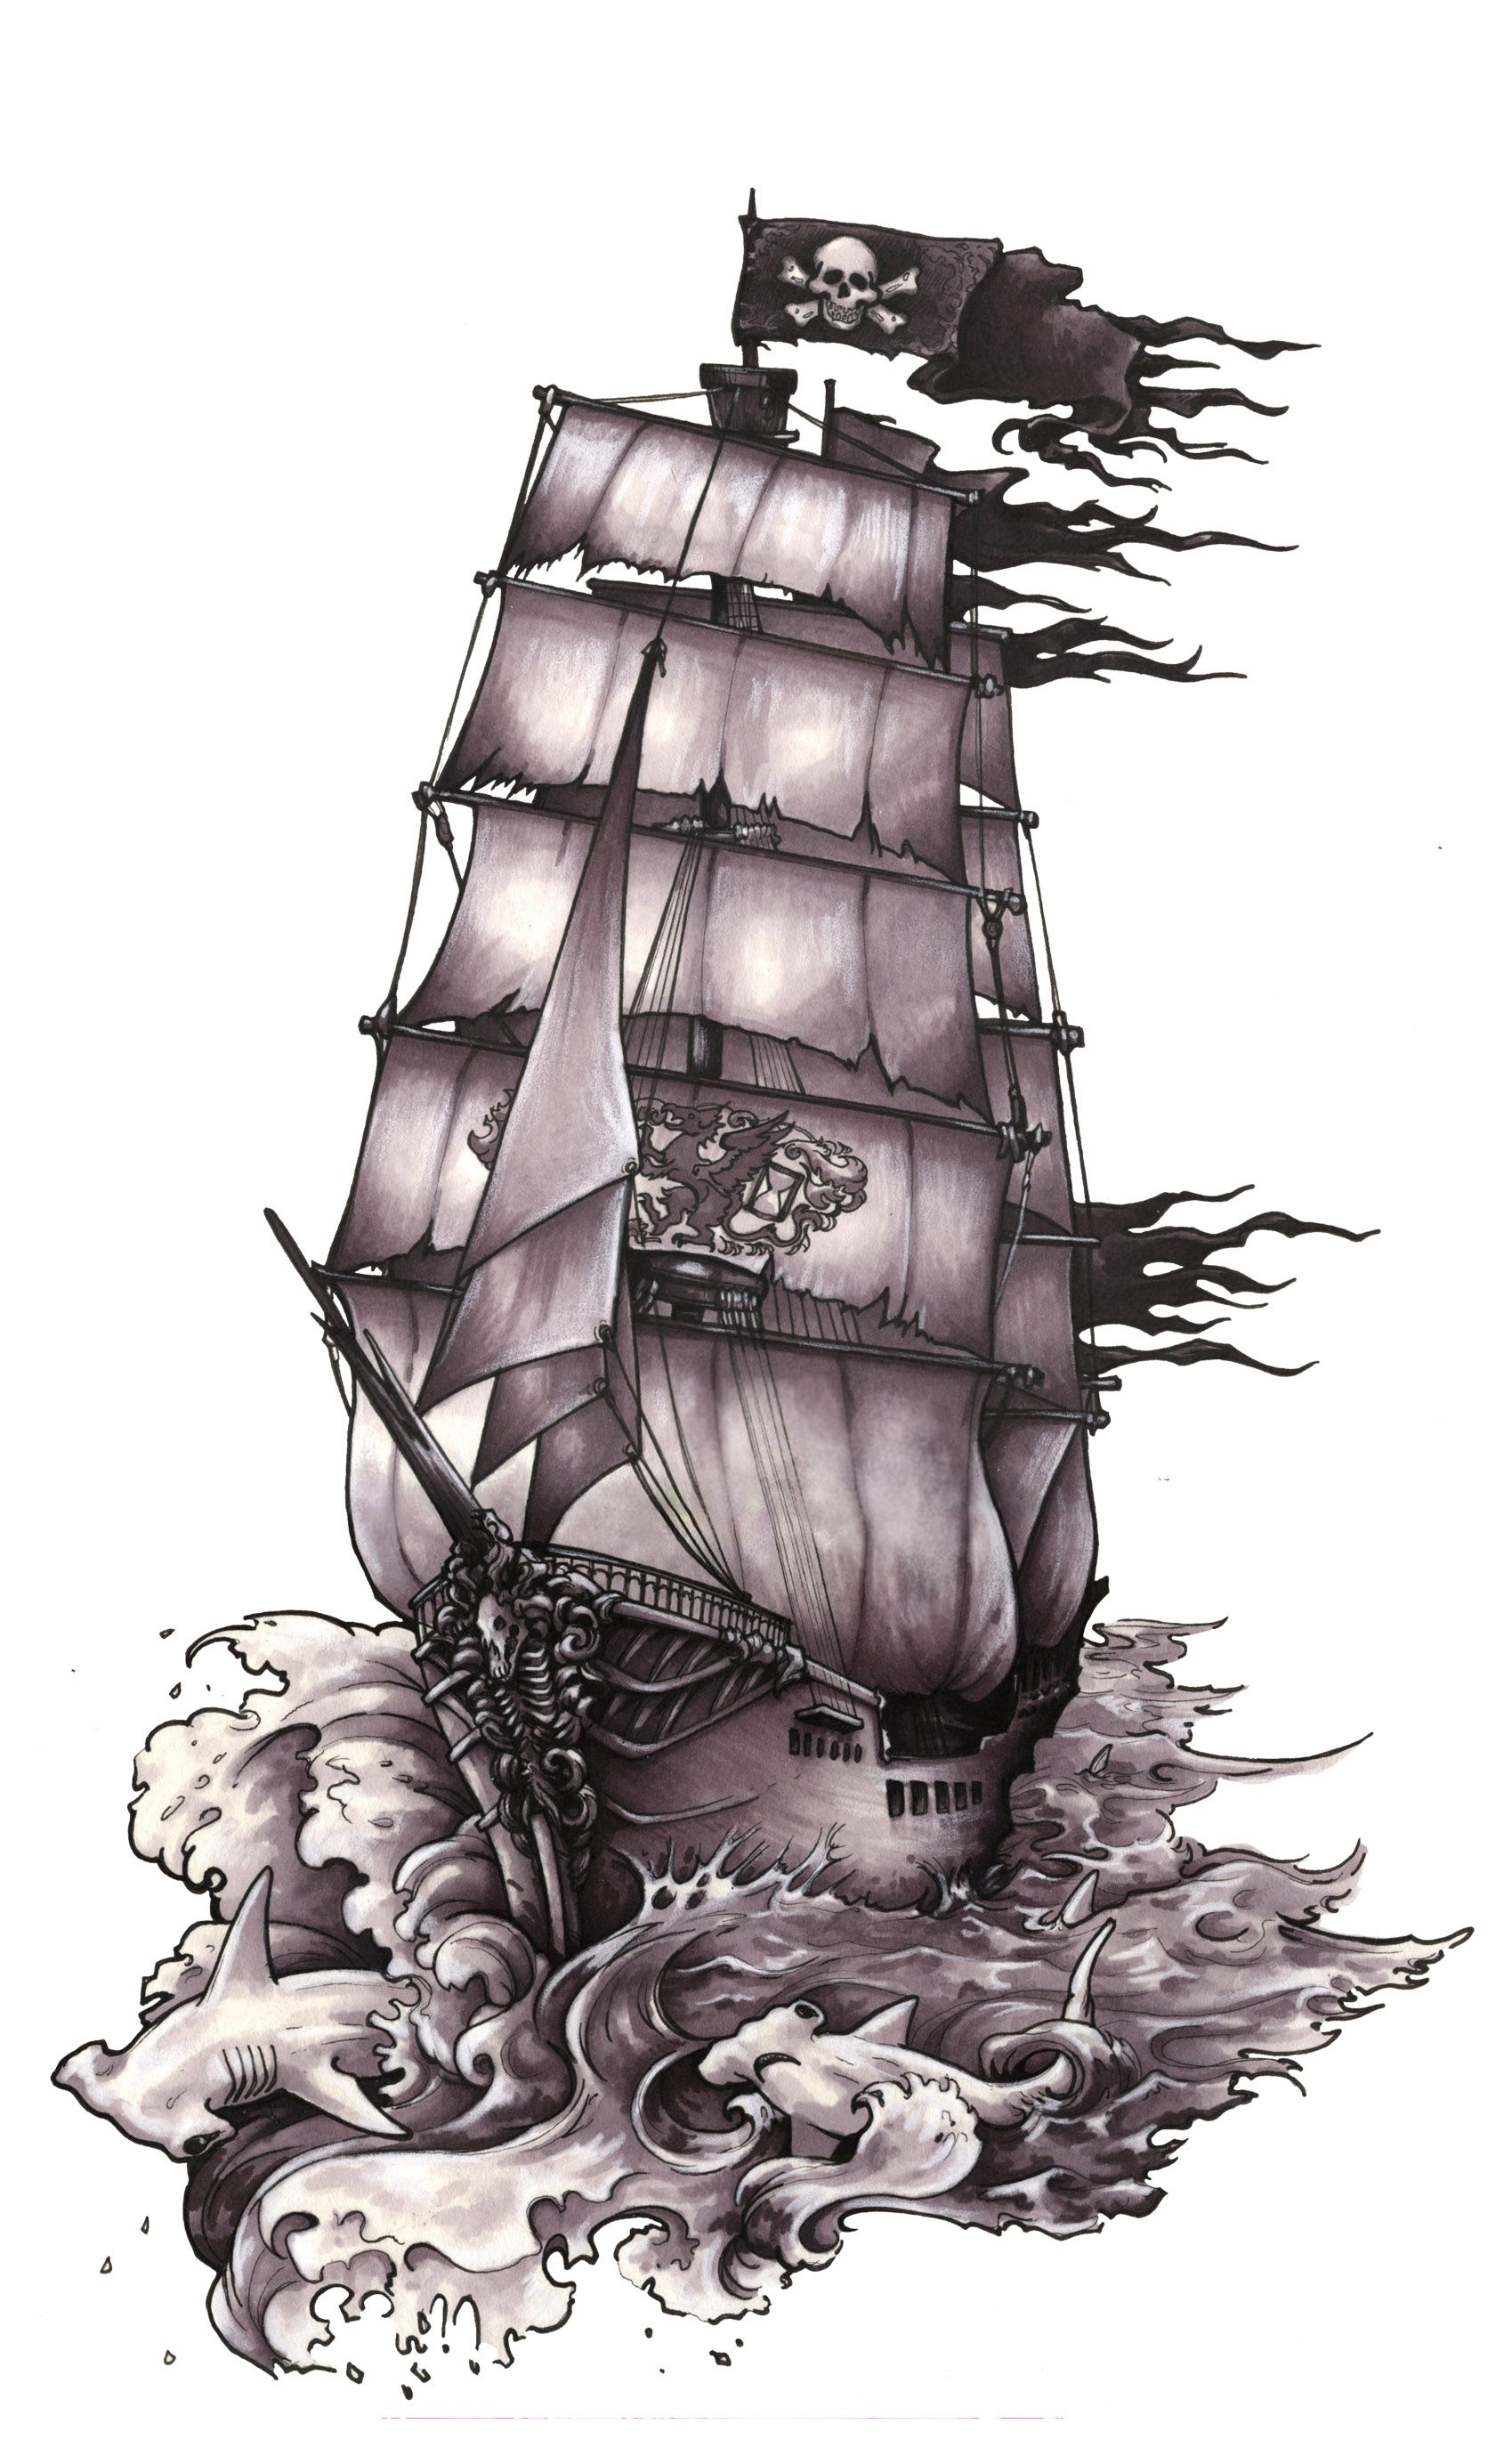 Pirate_Ship_by_RedQueen2112.jpg (1699×2750) | Pirate ship tattoos ...